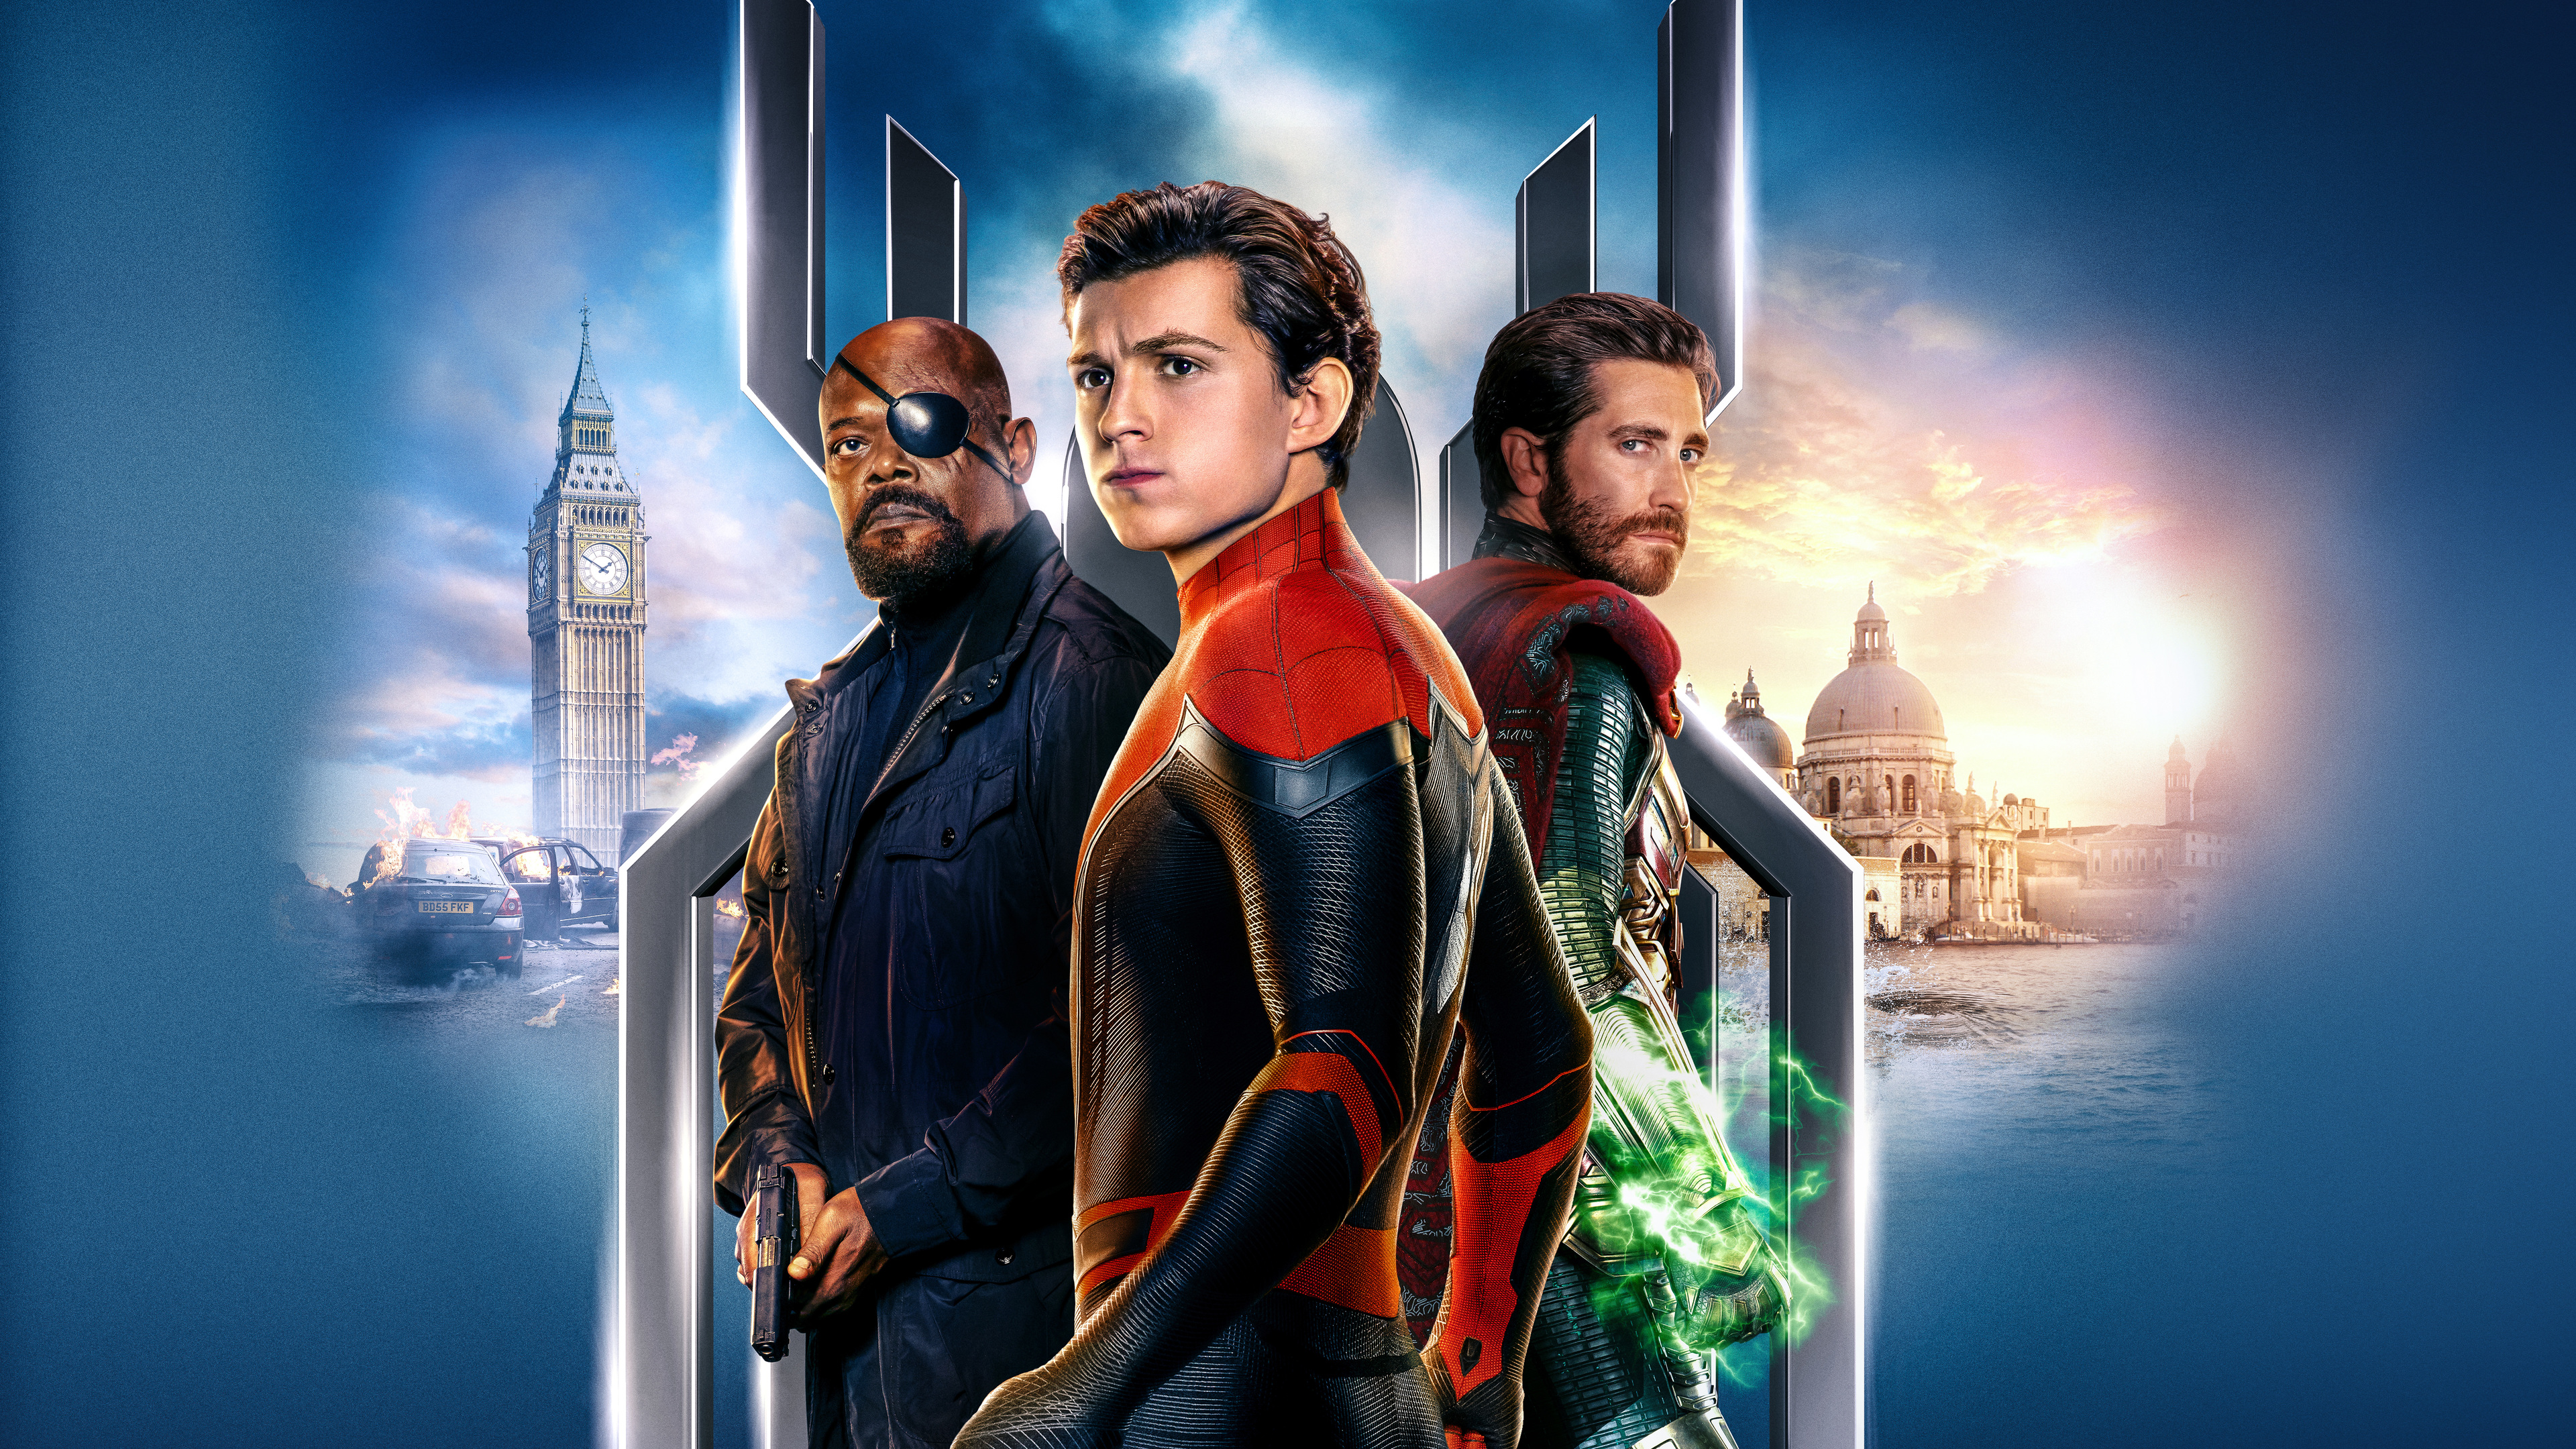 spiderman far from home movie 1562106130 - Spiderman Far From Home Movie - spiderman wallpapers, spiderman far from home wallpapers, movies wallpapers, hd-wallpapers, 8k wallpapers, 5k wallpapers, 4k-wallpapers, 2019 movies wallpapers